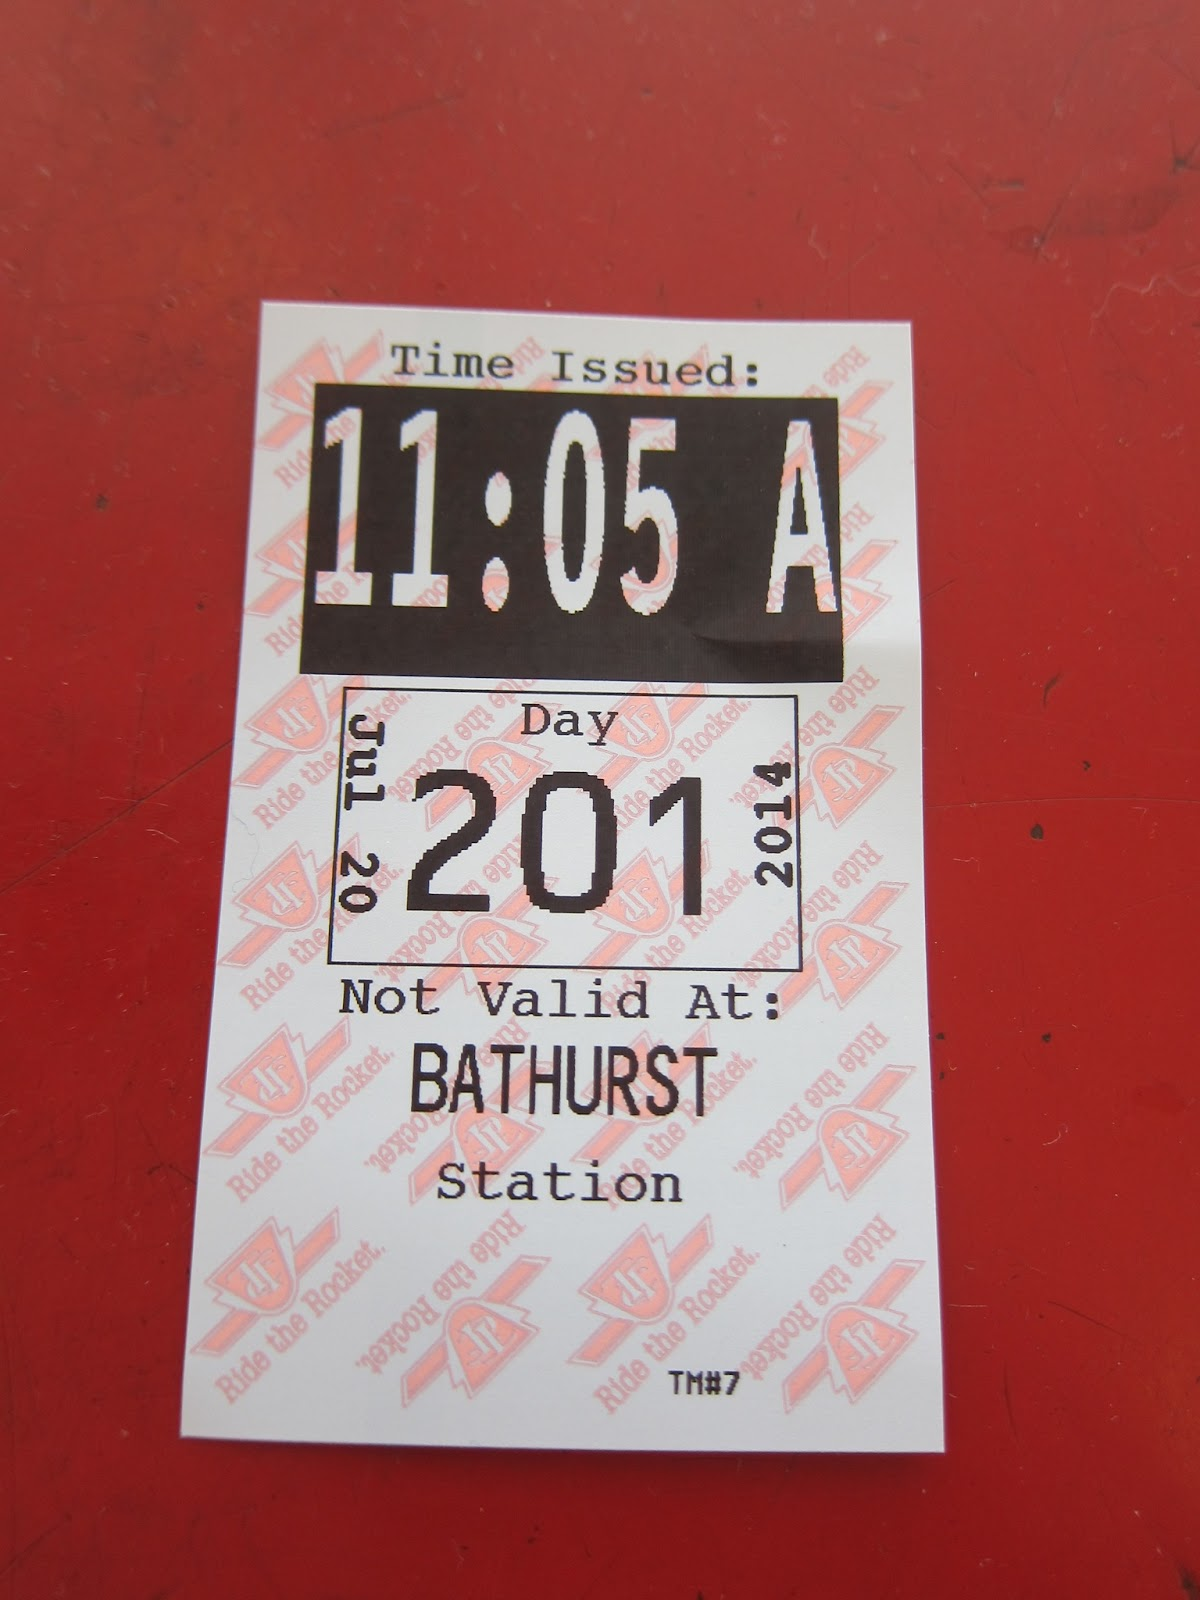 Bathurst station transfer